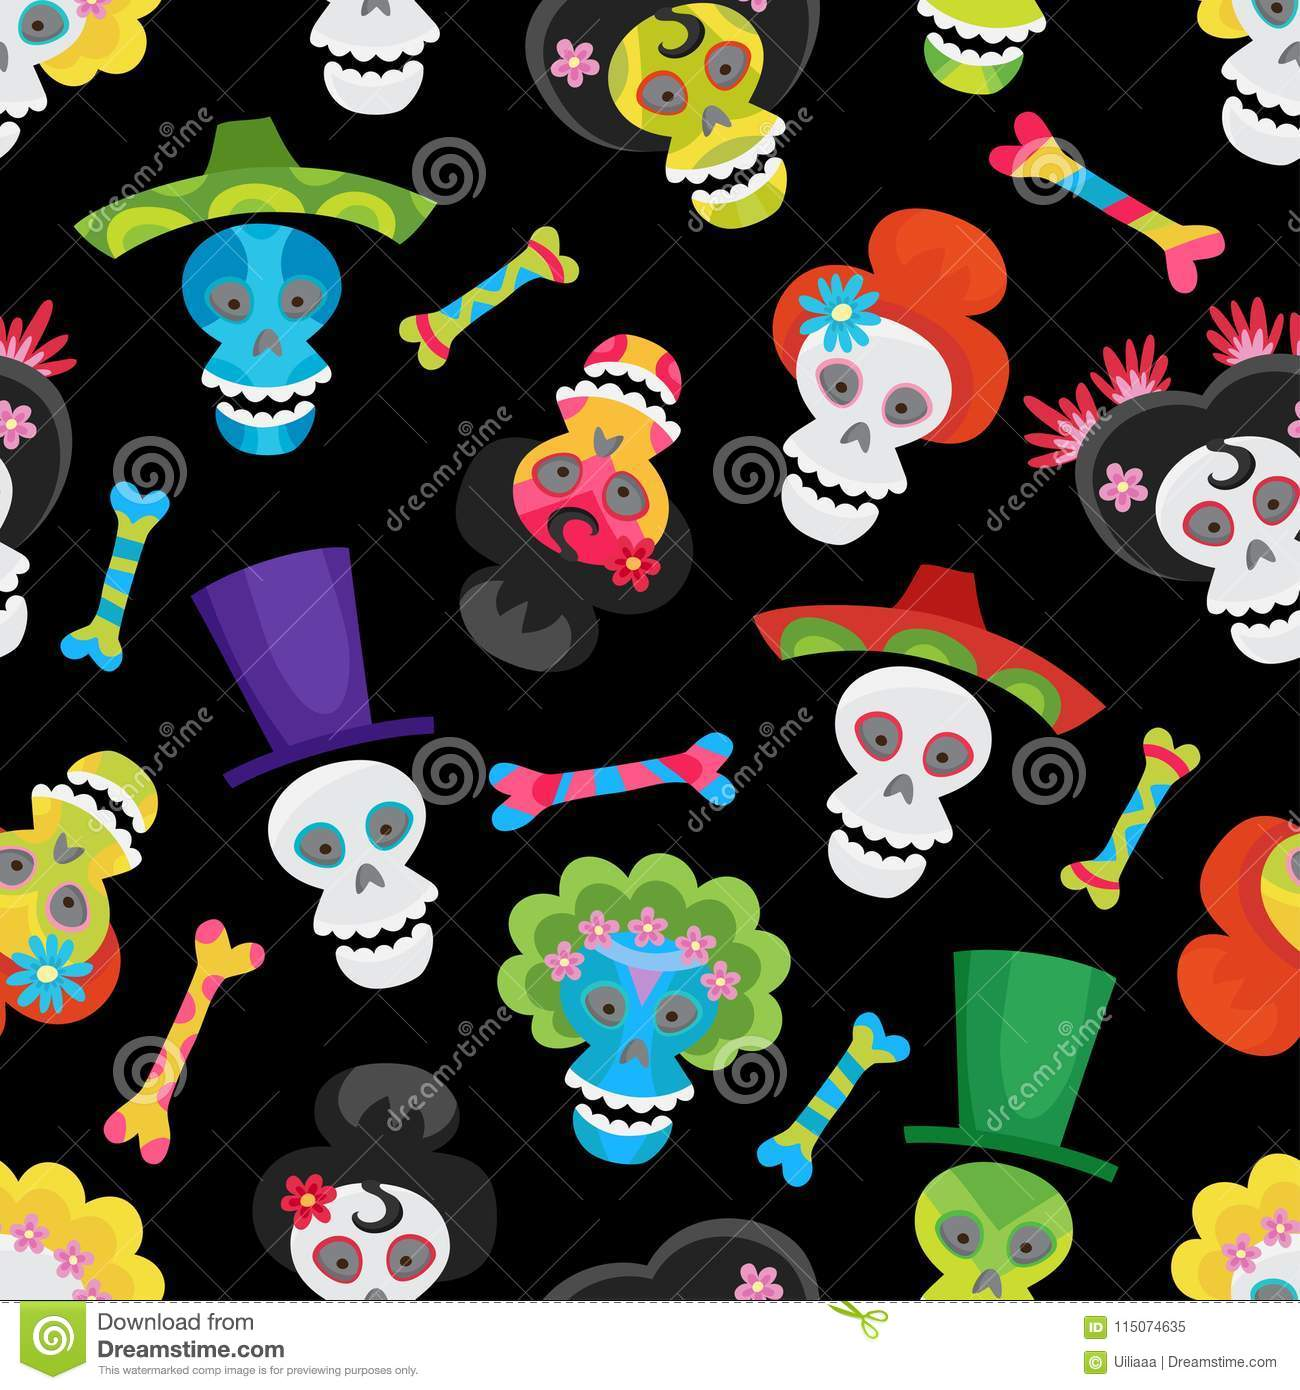 6e48b46a092 Seamless Pattern With Colorful Skulls And Bones For Halloween Stock ...